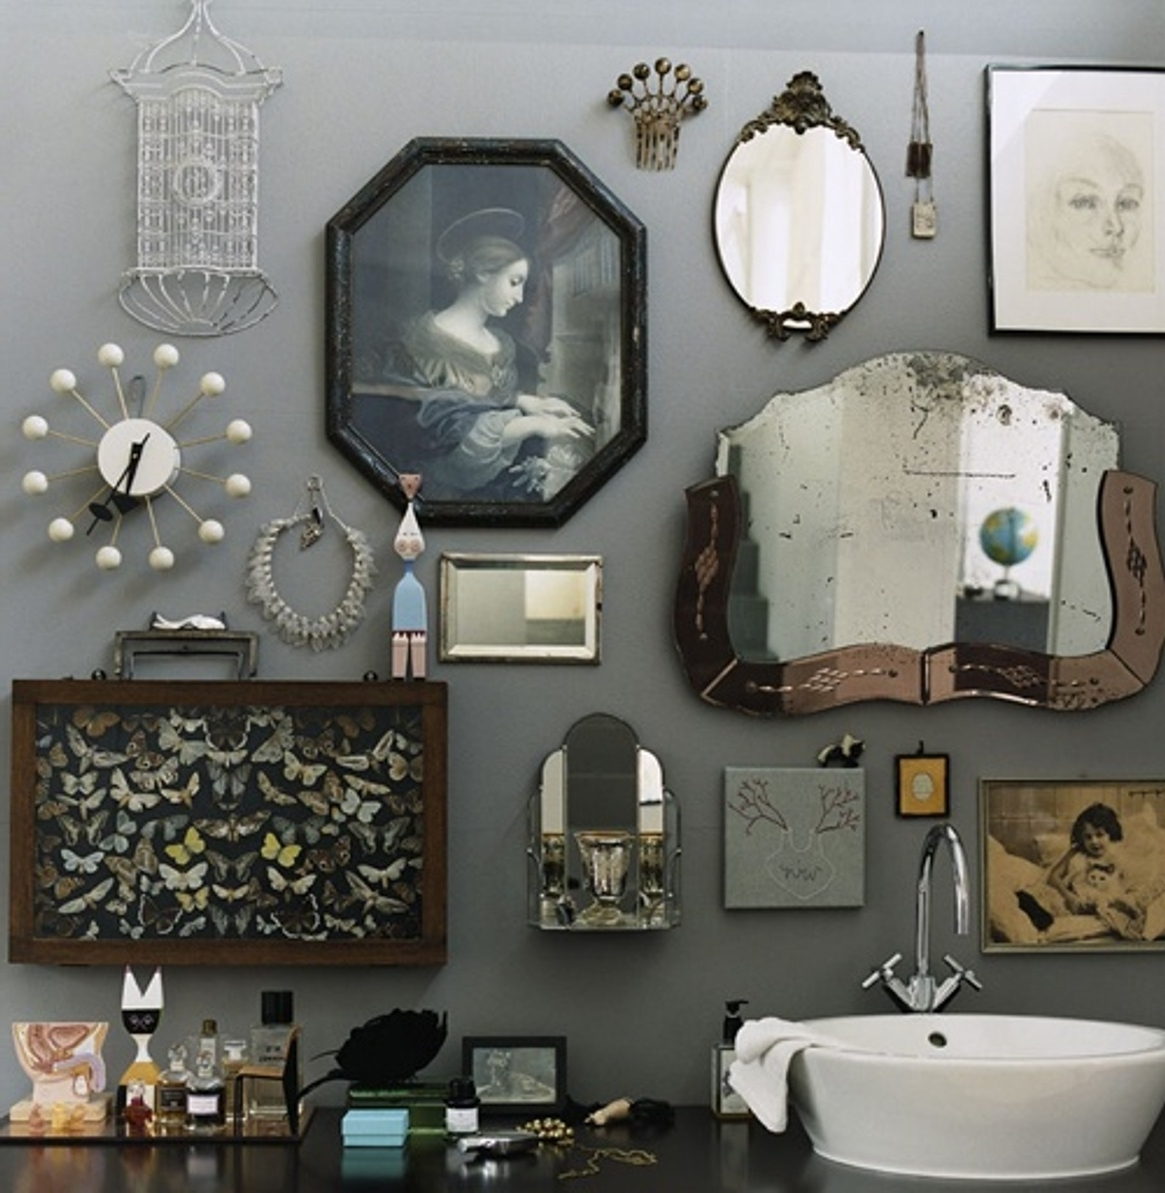 Charming Bathroom Wall Decor Inspirations — The Home Redesign In Well Known Wall Accents For Bathrooms (View 4 of 15)